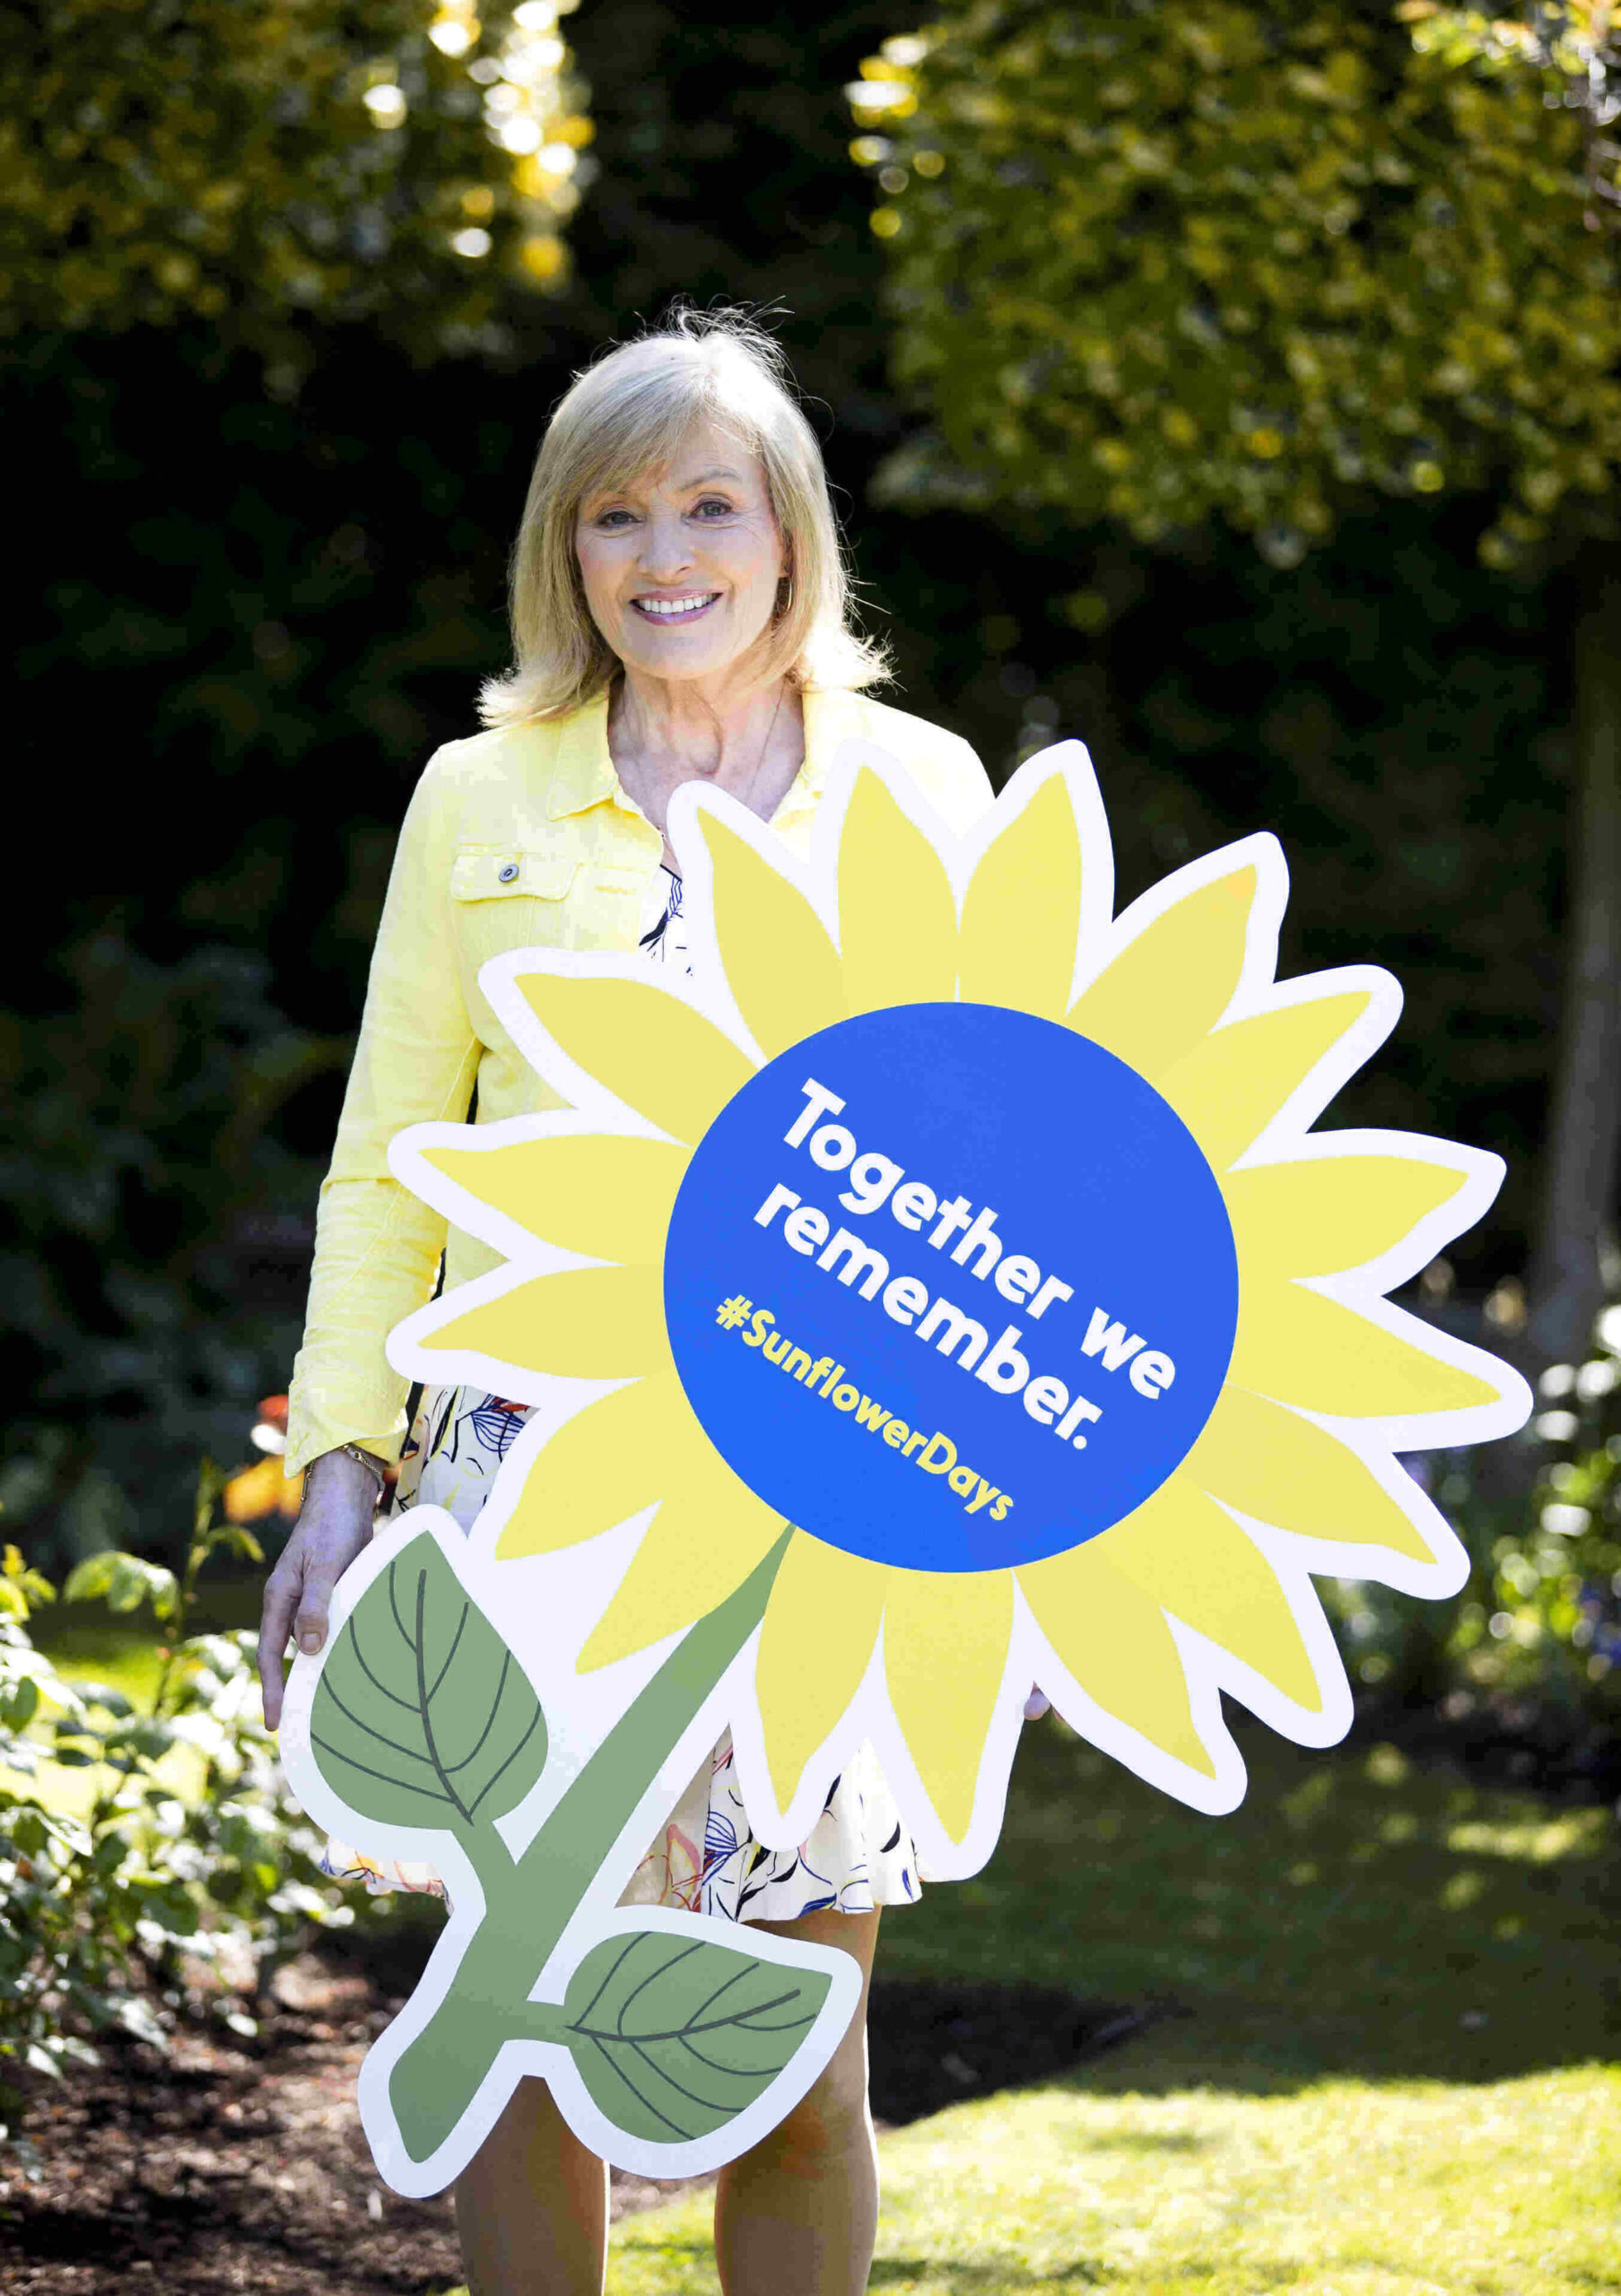 Broadcaster and Sunflower Days Ambassador, Mary Kennedy, pictured above.